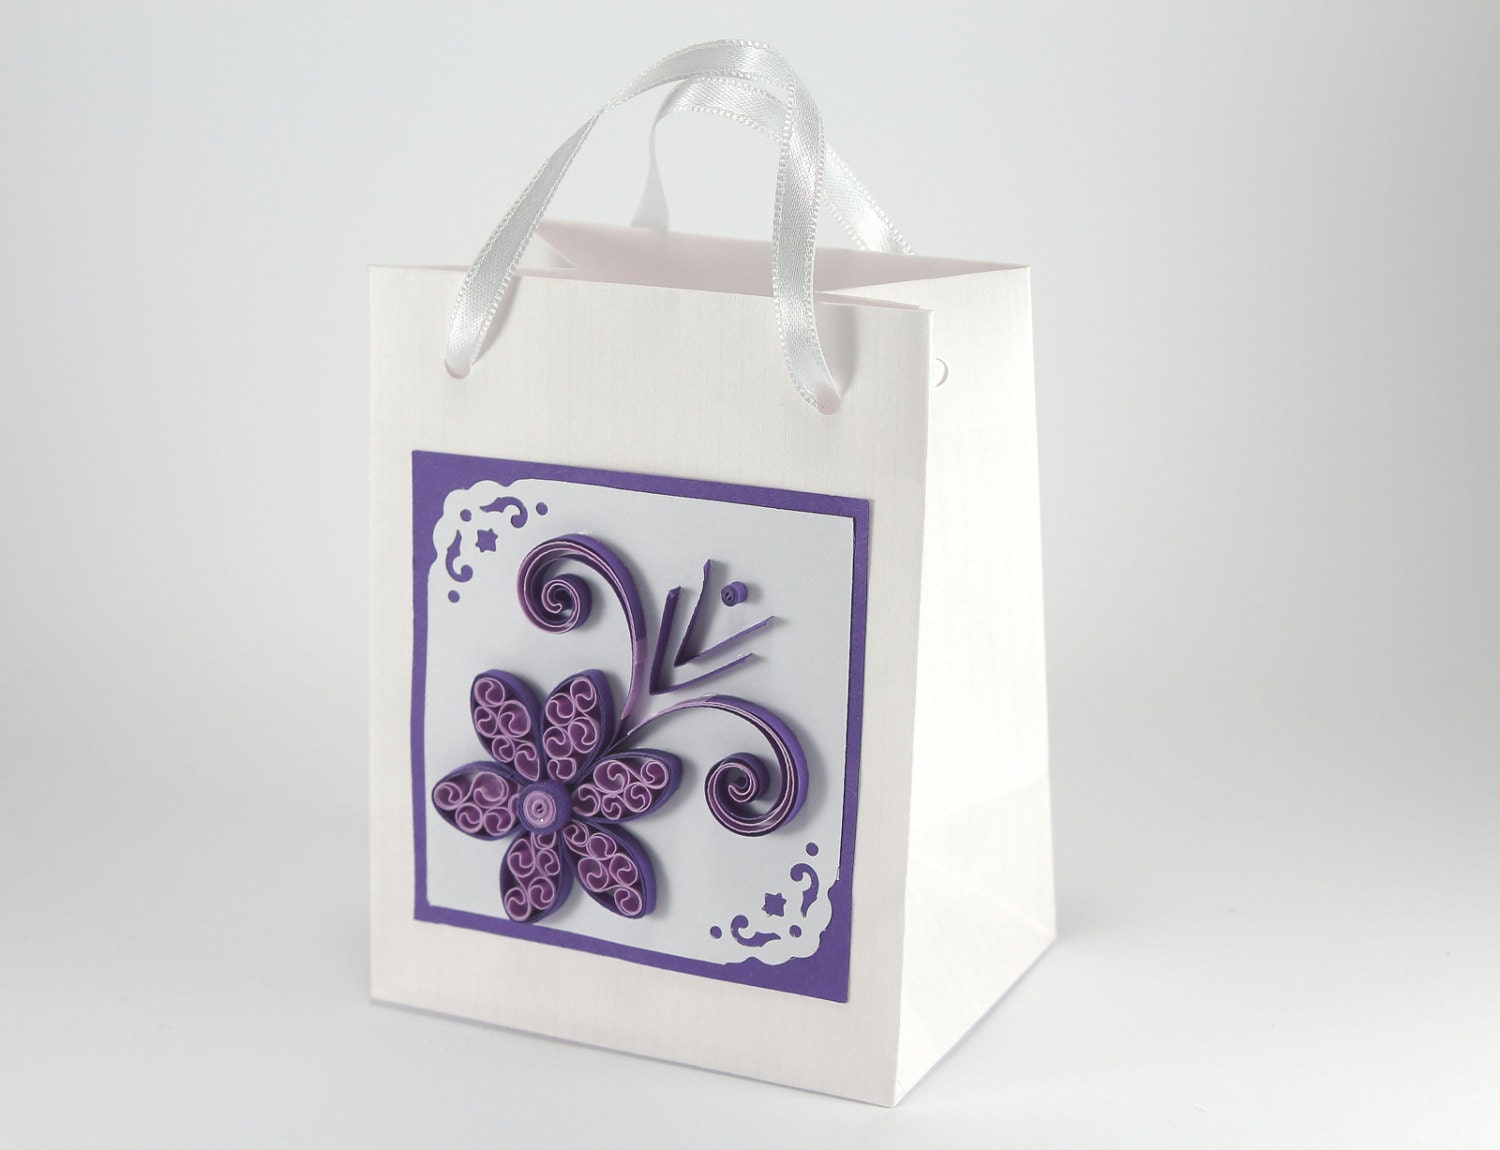 100 Wedding Favor Bags with Handles by stoykaspaperie on Etsy